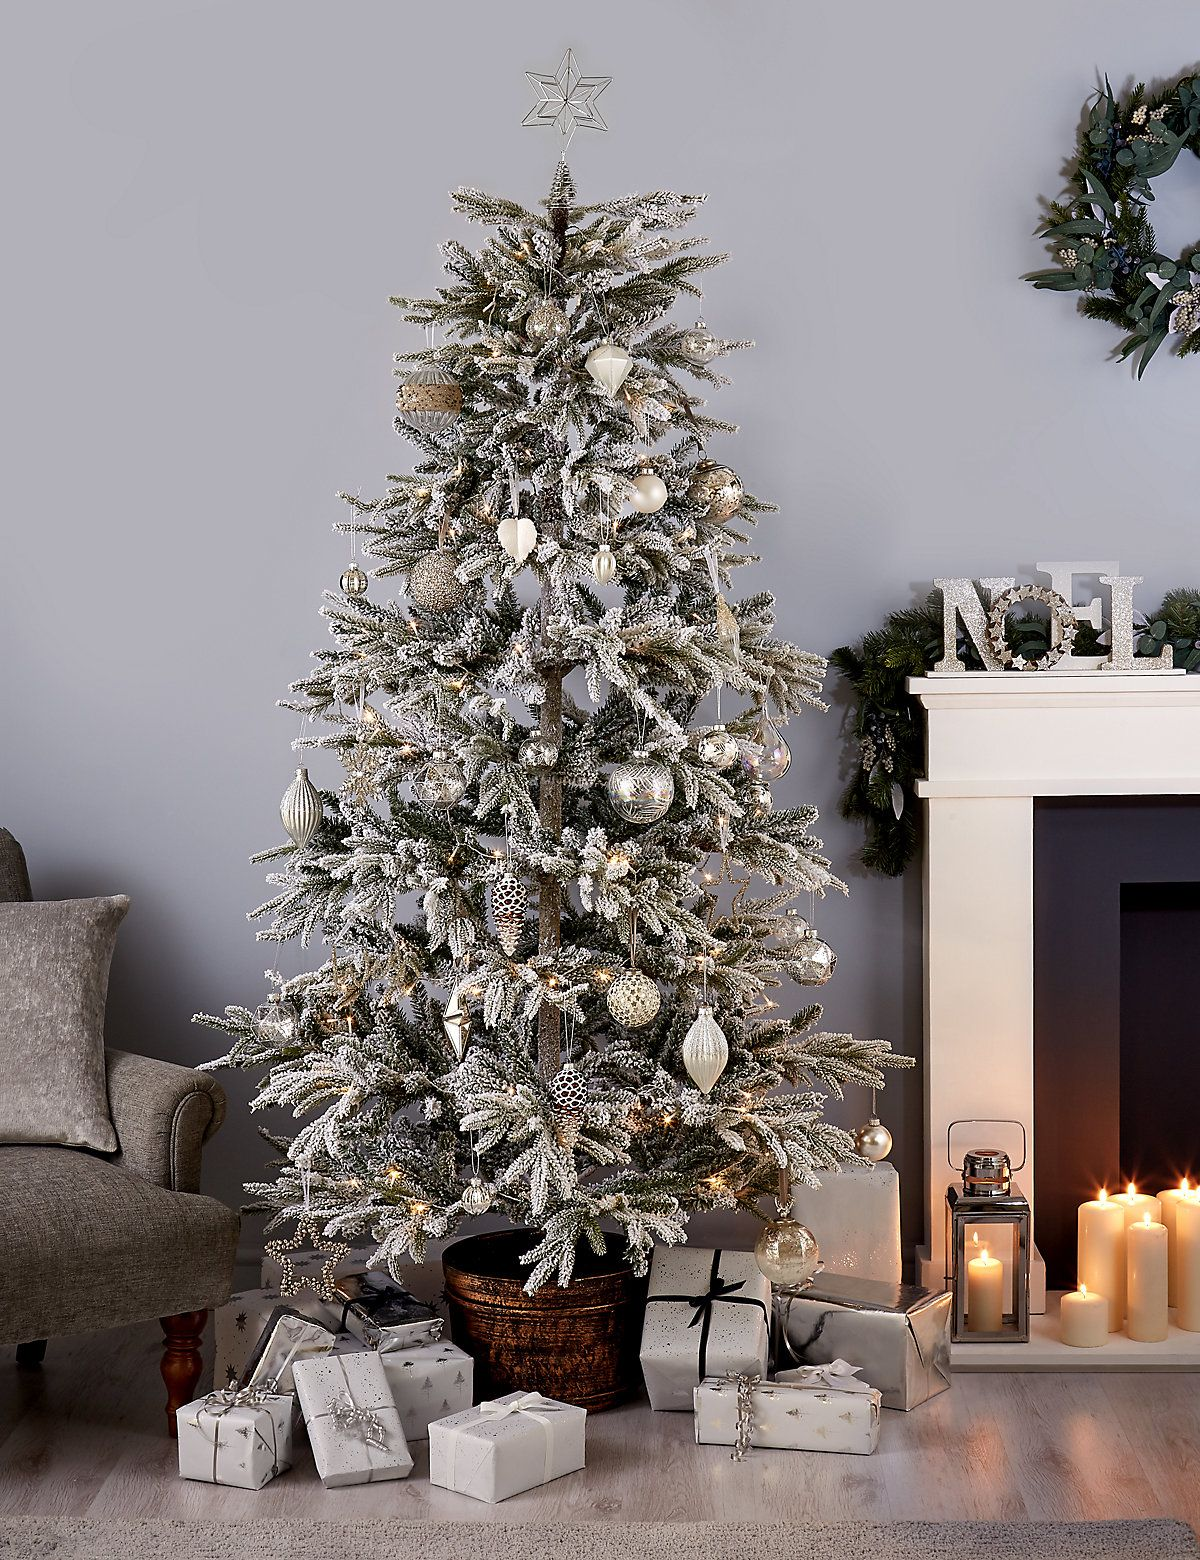 7ft Snowy Potted Christmas Tree M S Beautiful Christmas Christmas Tree Beautiful Decor